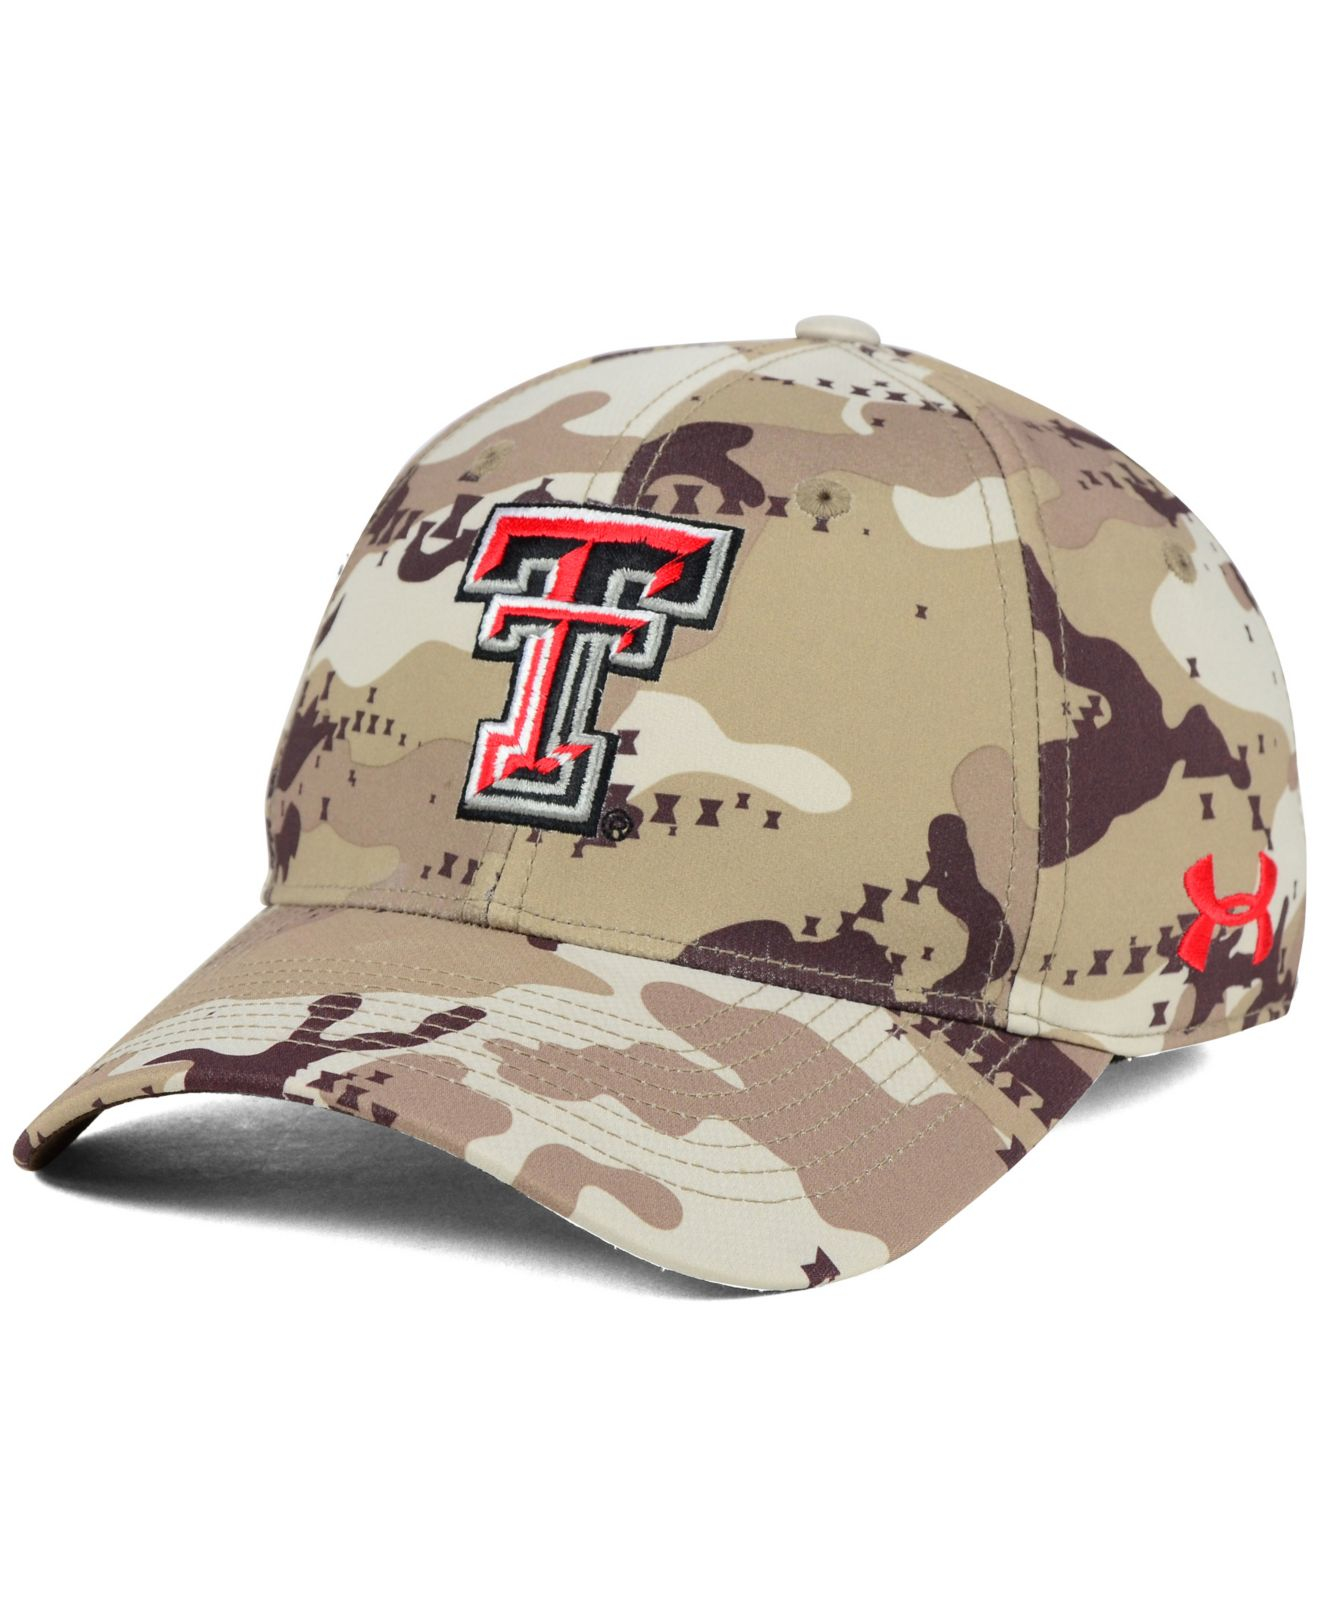 brand new a5159 4c177 ... discount lyst under armour texas tech red raiders camo stretch cap in  brown b2d89 9c4ae